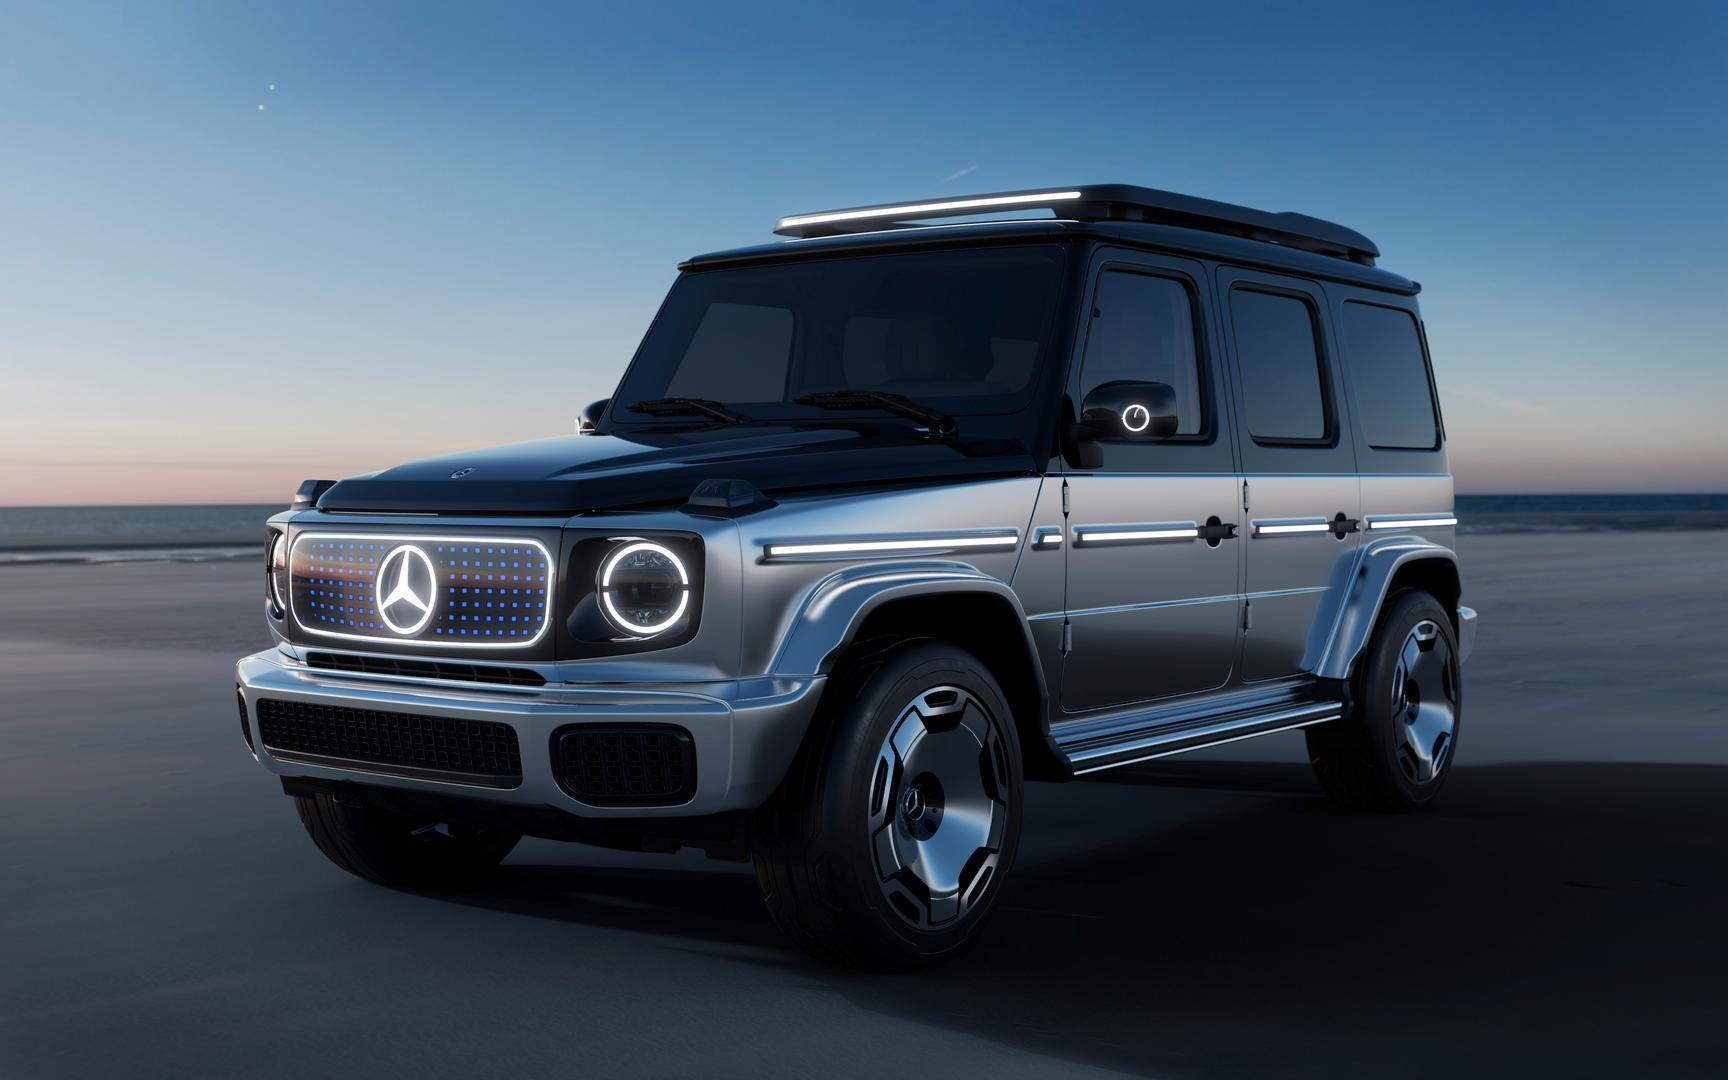 4 New Electric Cars from Mercedes-Benz to Look Out for in 2022/23